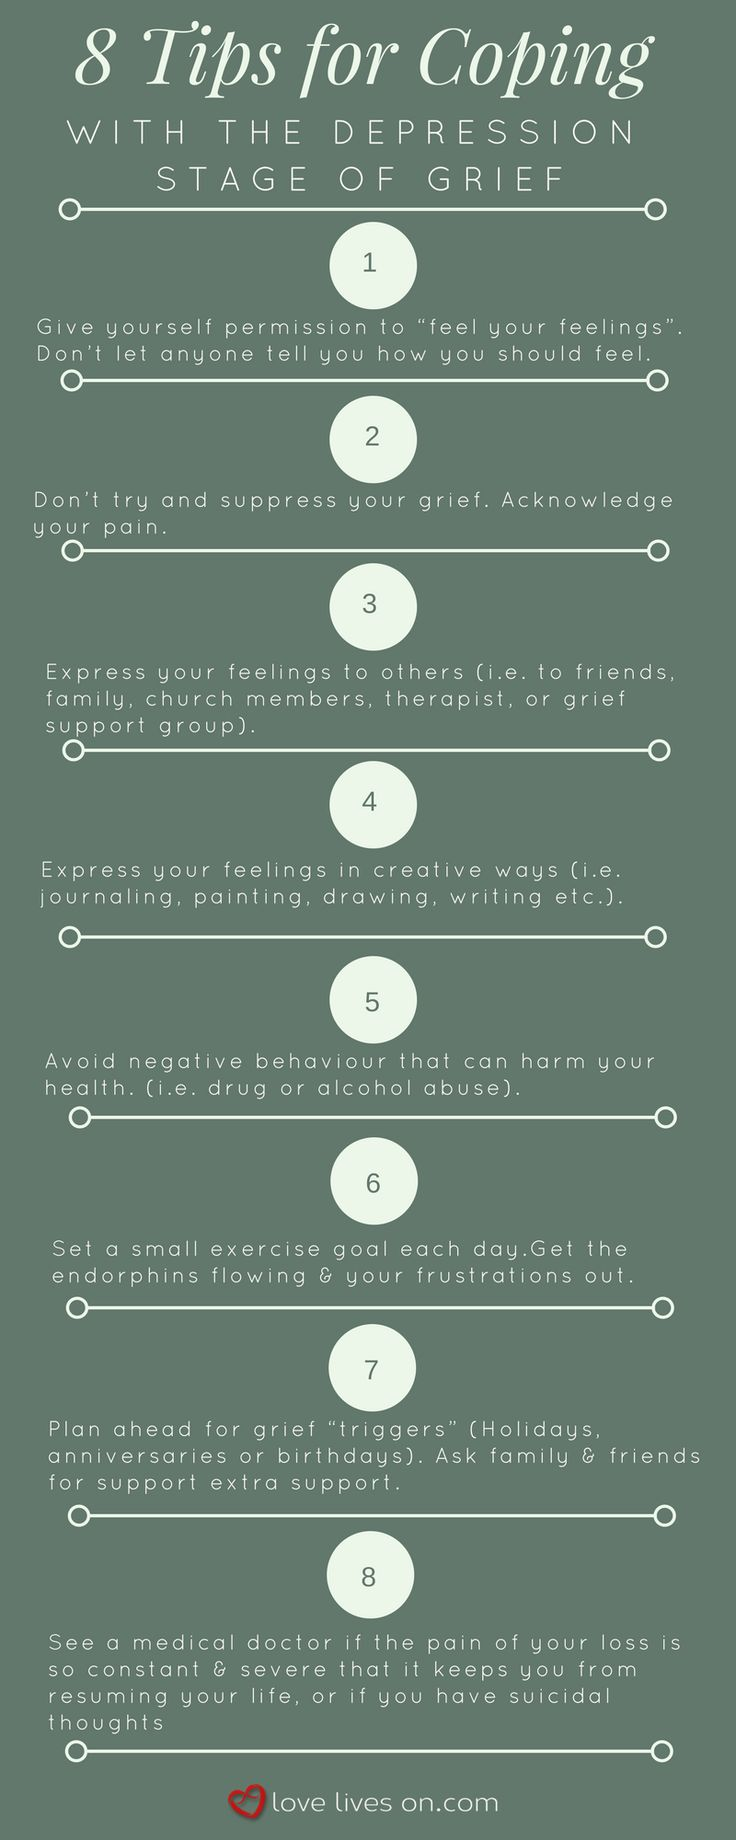 5 Stages of Grief Infographic: 8 Tips for Coping With the Depression Stage of Grief.